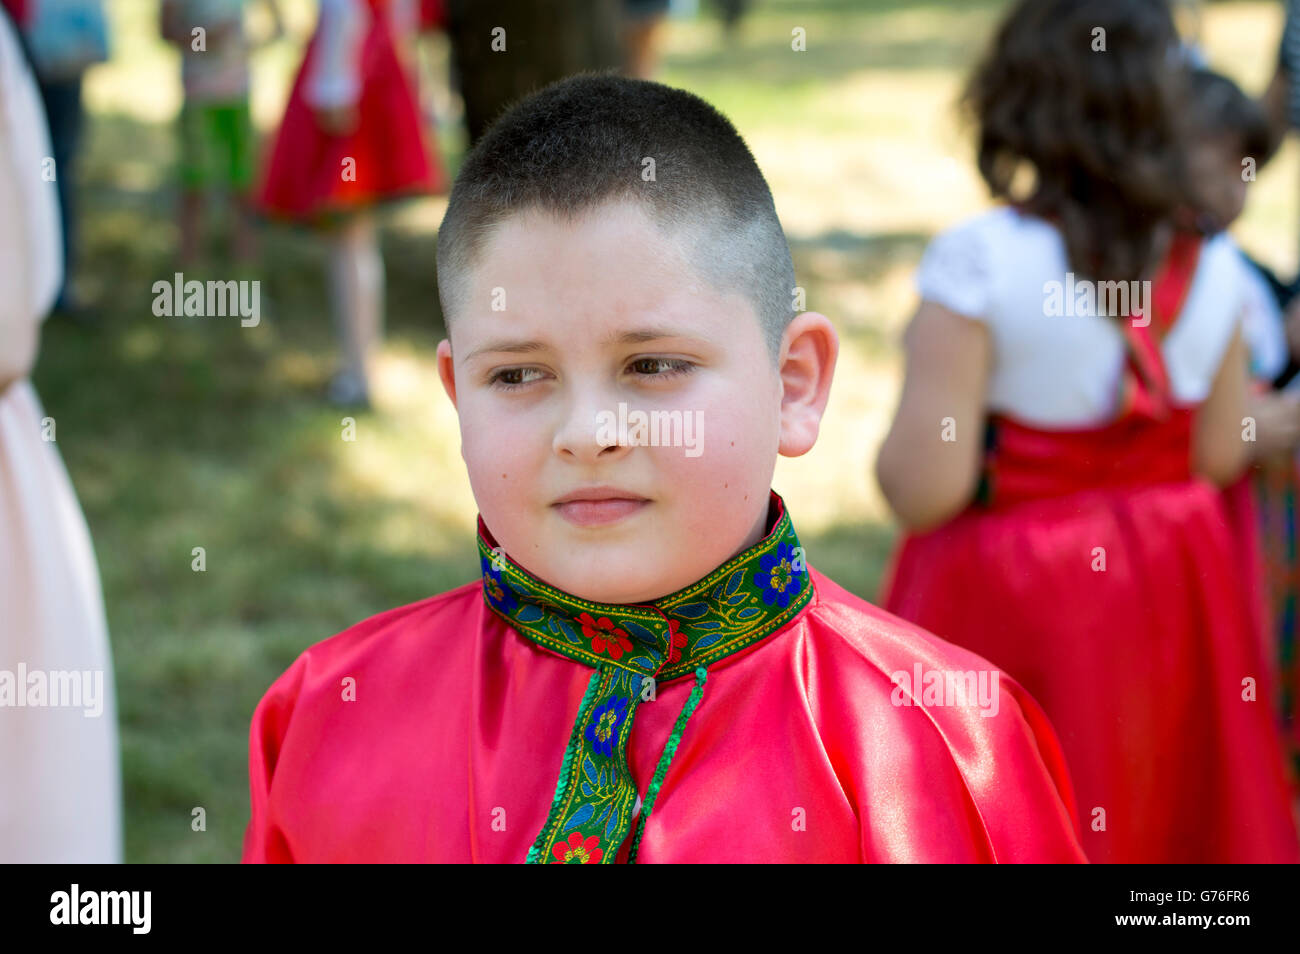 the boy in the Russian shirt during the holiday - Stock Image